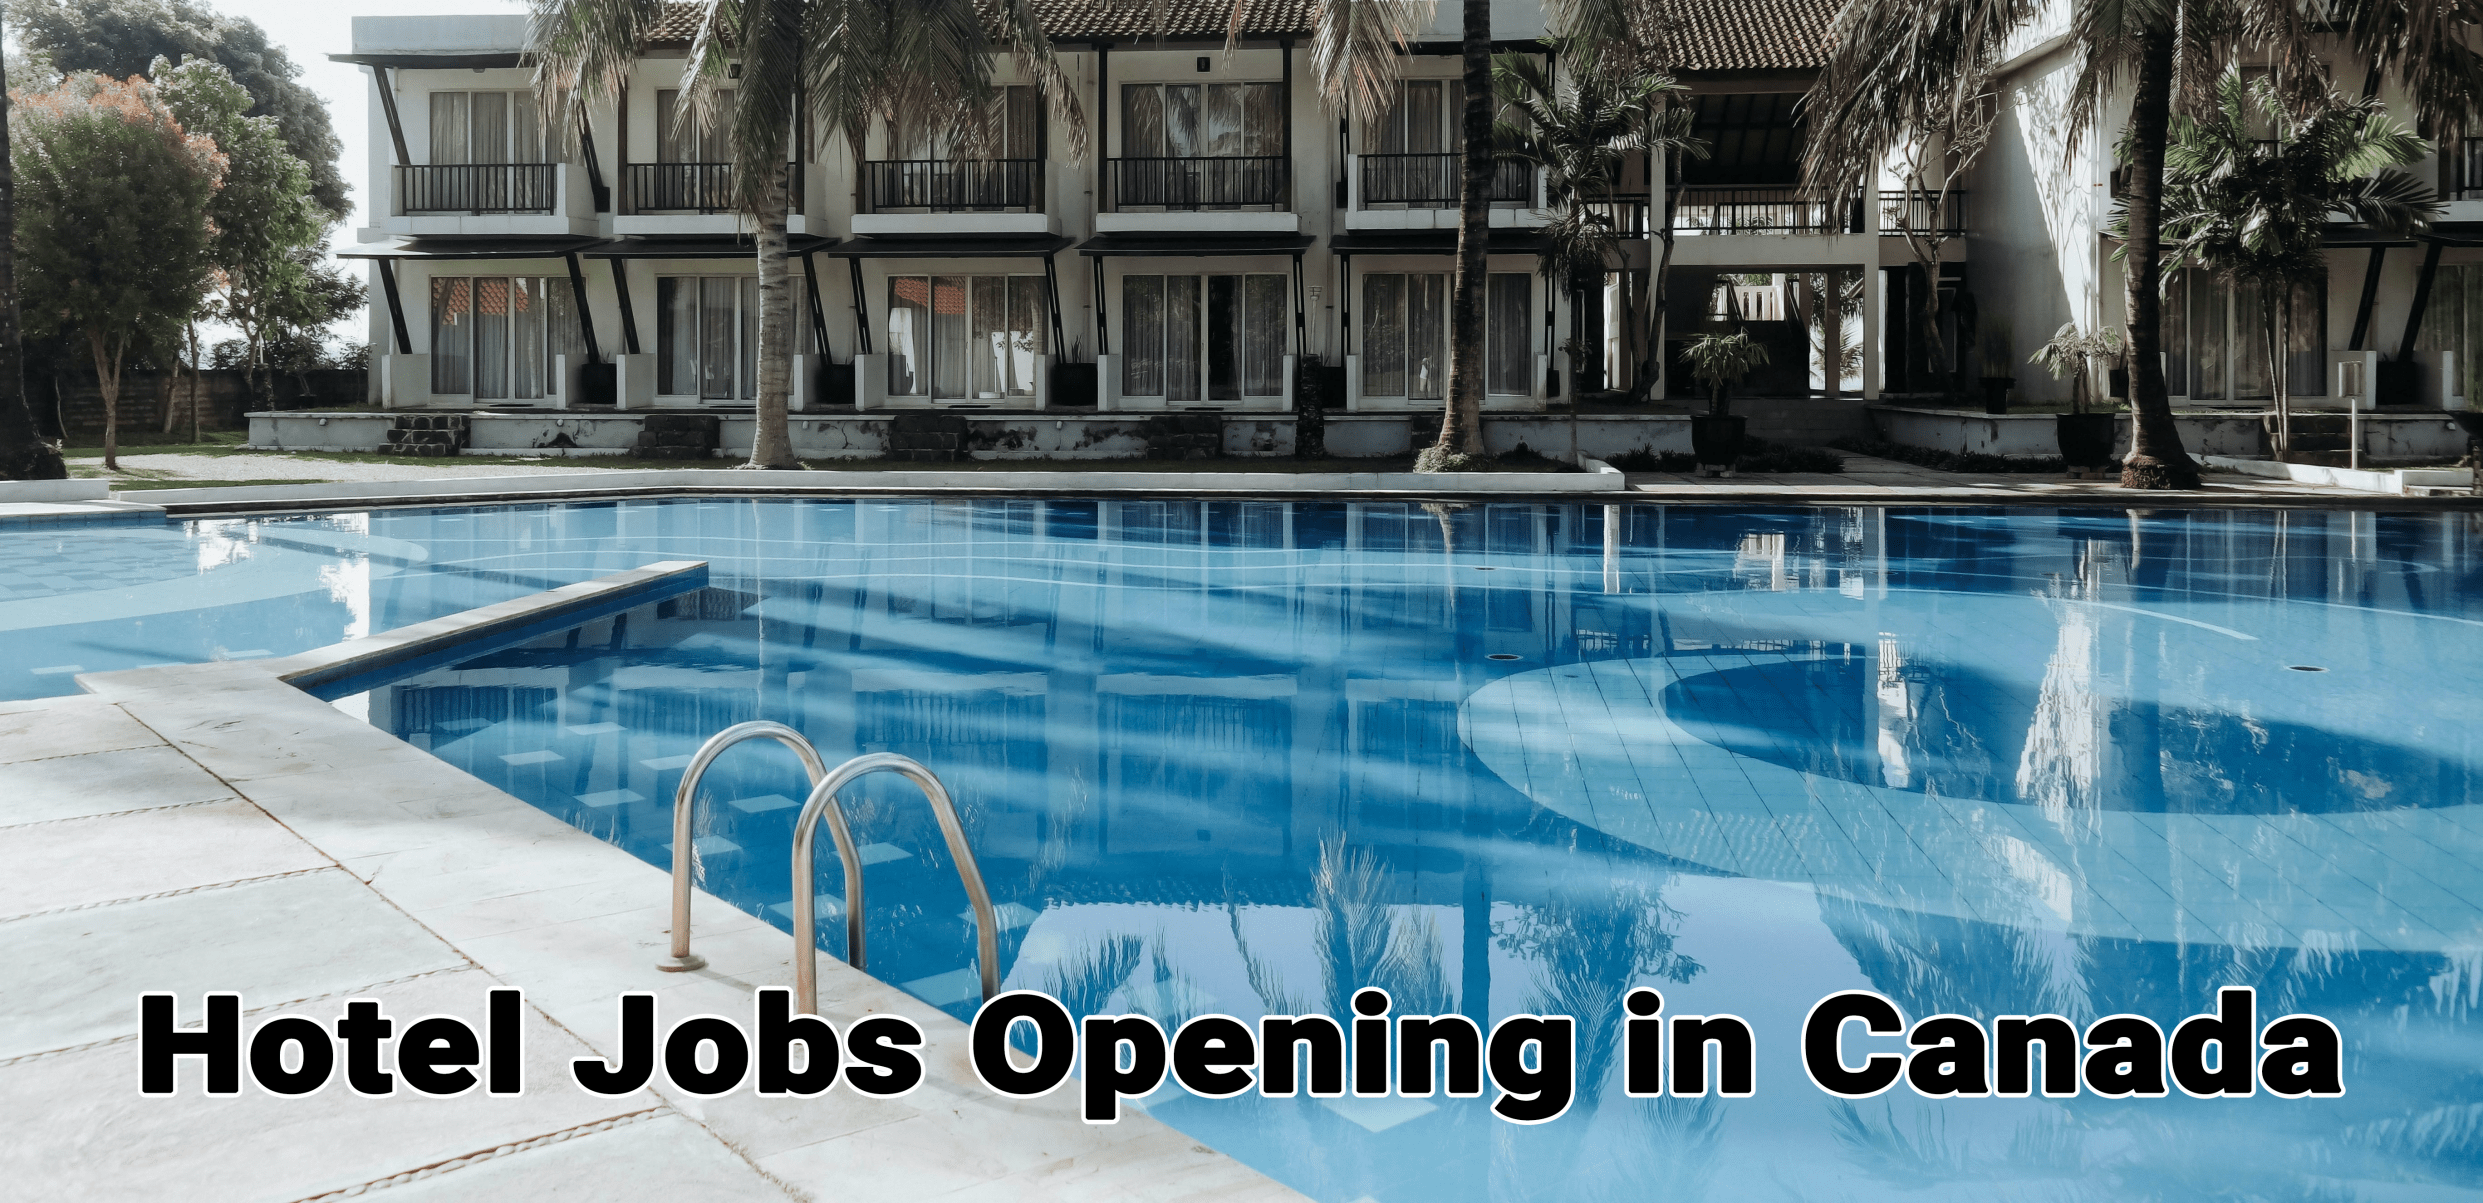 Hotel Jobs Opening in Canada